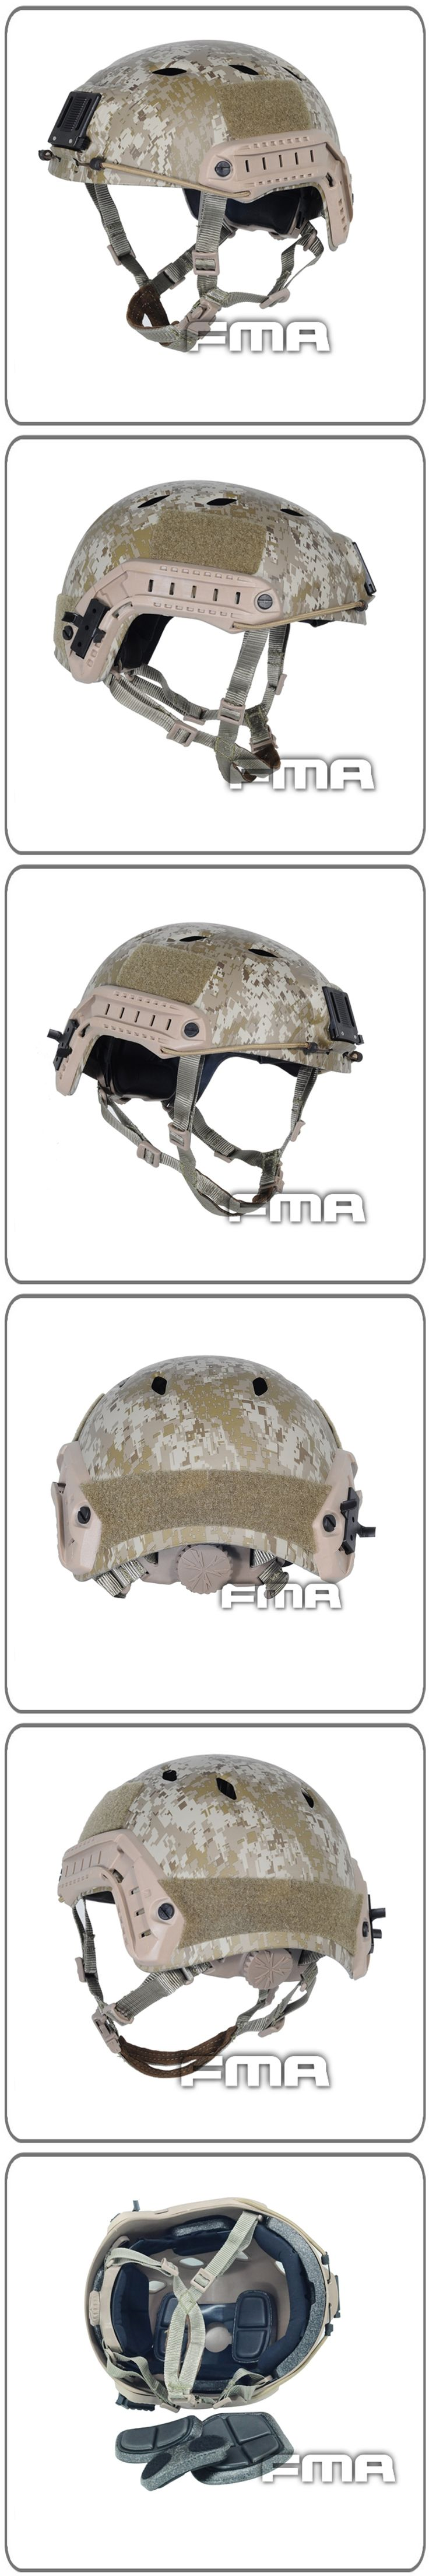 FMA Military Desert Tactical Accessories Army Combat Skydiving Quick Response Head Protector Helmet Free Shipping